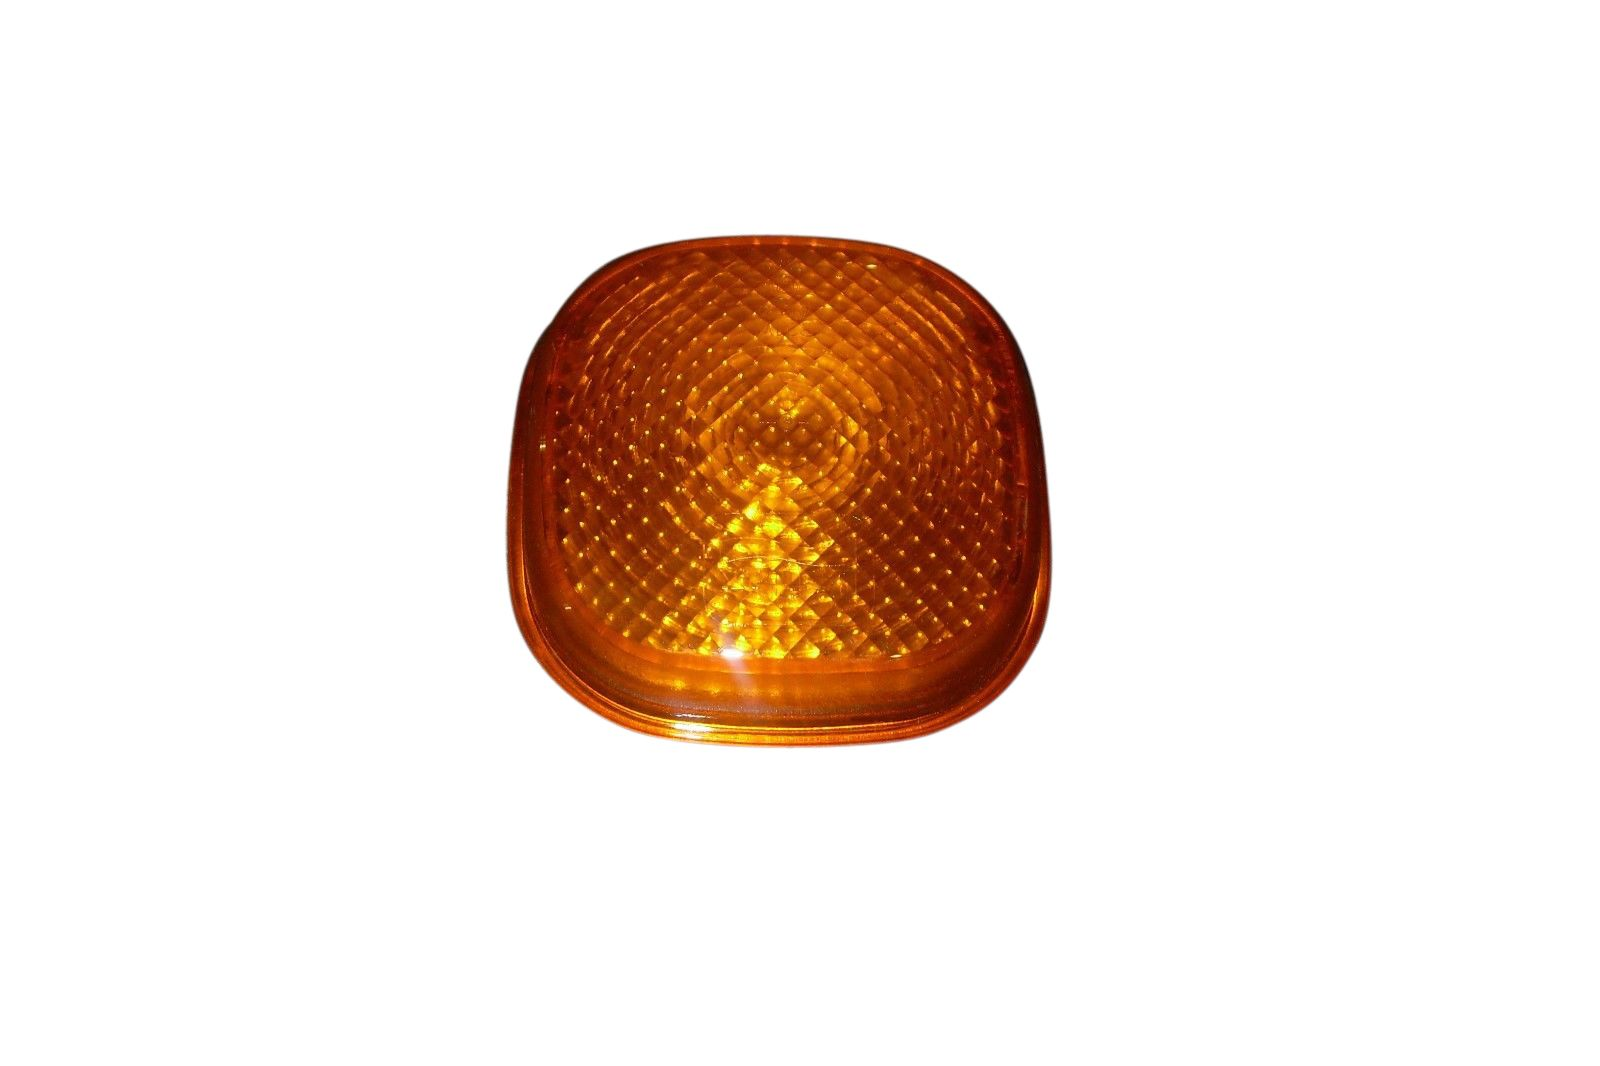 JCB INDICATOR LIGHT LENS 700/50073